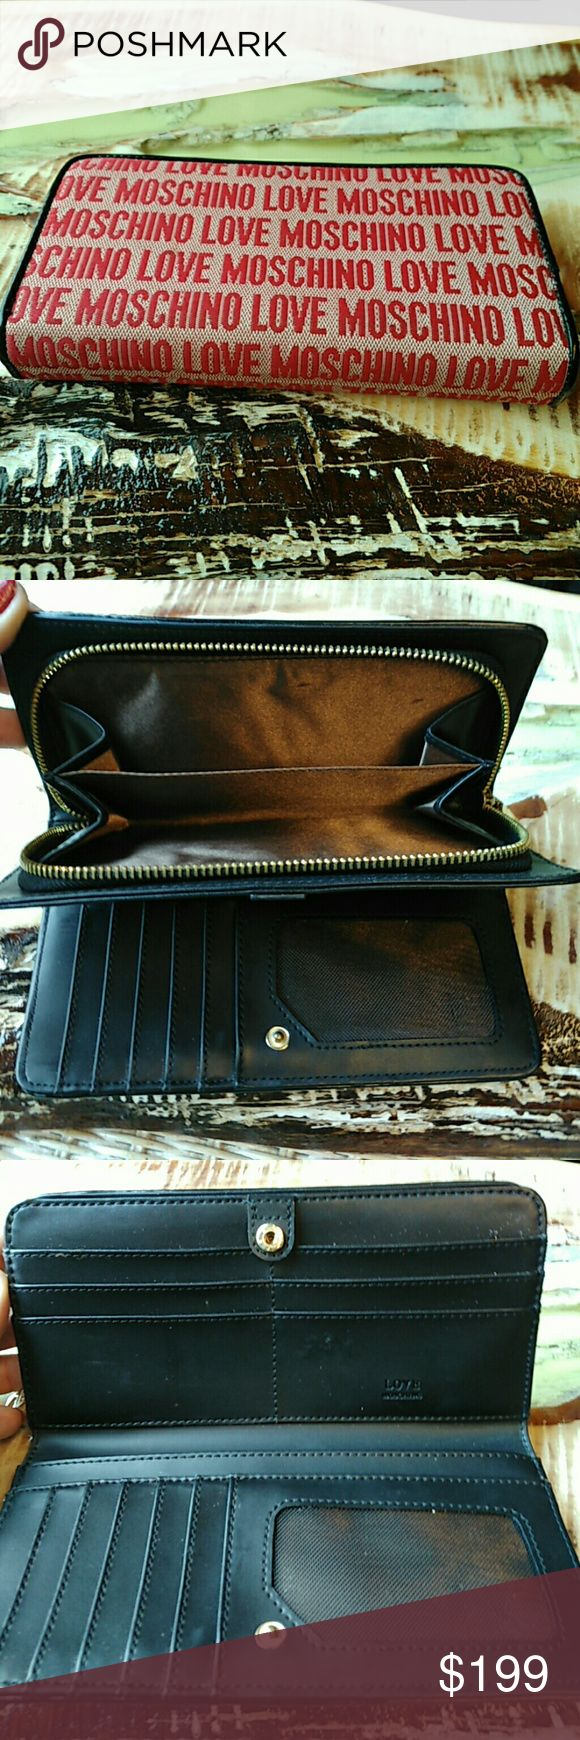 FREE SHIPPING! Moschino red wallet black signature VERY REDUCED DONT MISS!!! Moschino AUTHENTIC LIKE NEW red wallet. Two compartments. One side zips up. Perfect Holiday gift, Christmas gift, Stocking stuffer. Full size wallet.  USE BUNDLE BUTTON EVEN IF ONLY BUYING ONE ITEM. ALL ITEMS OVER $50 ARE FREE SHIPPING.     Inv#ss626 Moschino Bags Wallets